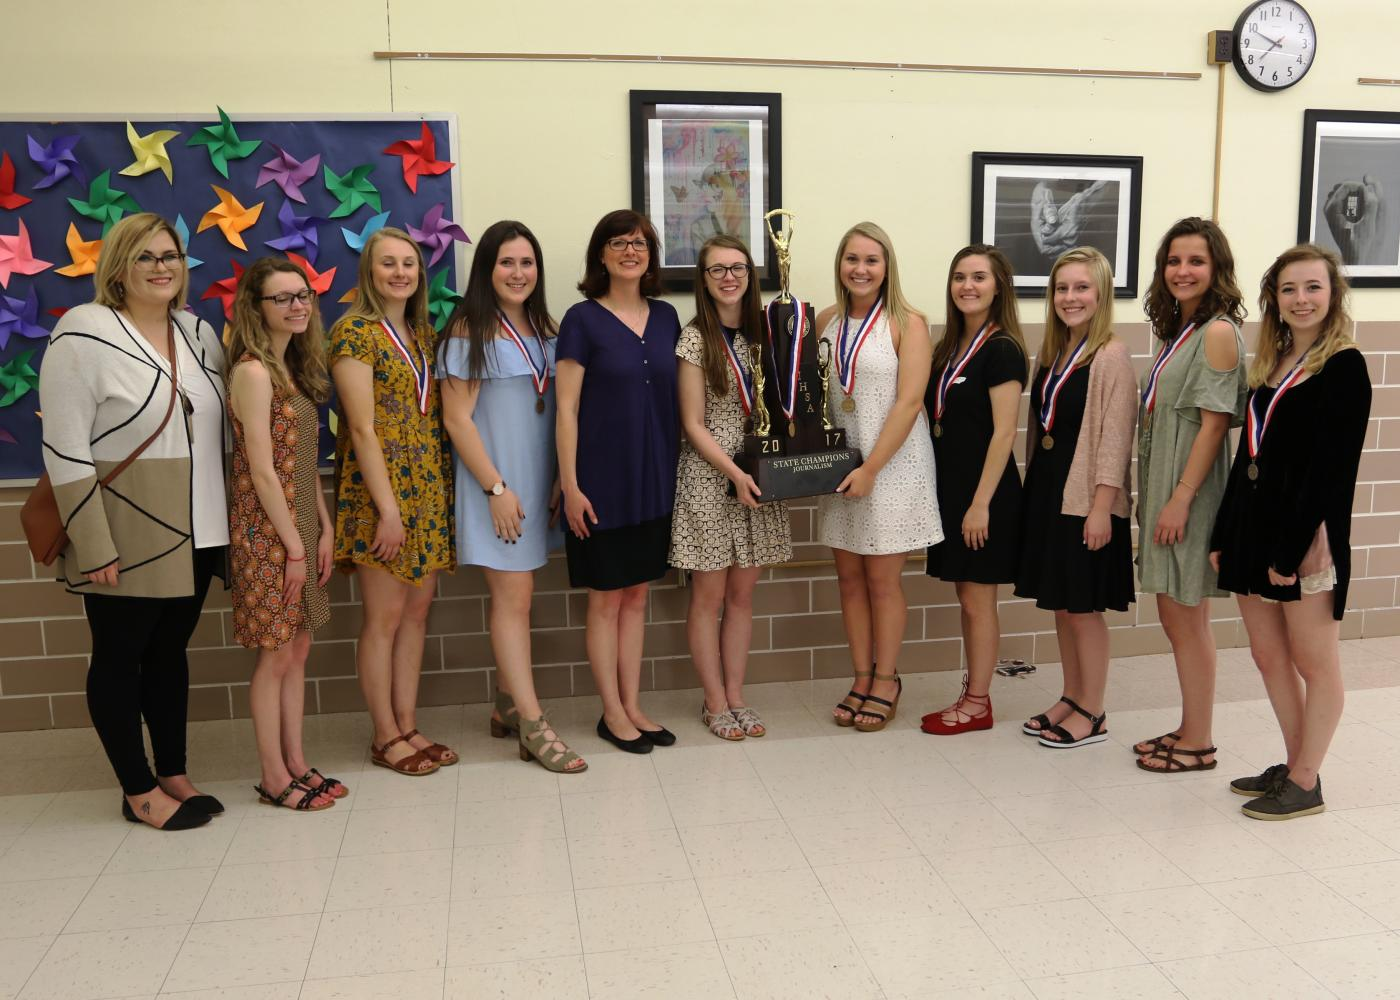 Nine members and the two advisers of the EHS journalism team stand next to the championship trophy at the District 7 School Board Meeting on May 8. From left: Ms. Mudge, Maddi Lammert, Jane Thompson, Jamie Skigen, Mrs. Thrun, Erin Morrisey, Morgan Goebel, Emma Lipe, Sophie Kraus, Jade Weber and Nara Markowitz.